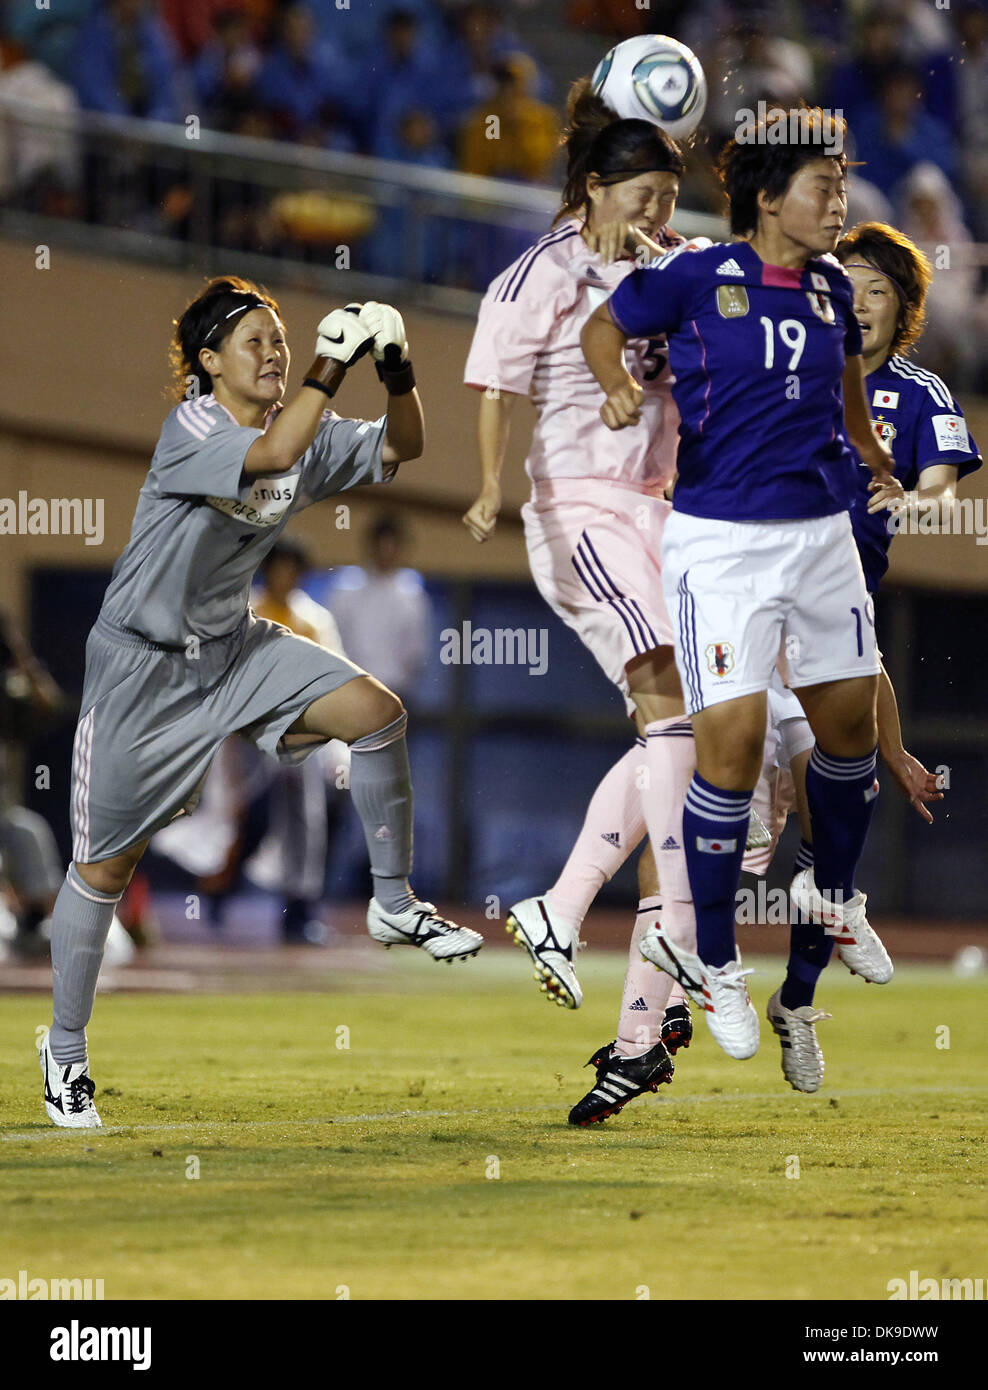 Aug. 19, 2011 - Tokyo, Japan - MEGUMI TAKASE (R) of Japan Women's National Team in action during the charity match for the earthquake and tsunami victims at the National Stadium in Tokyo, Japan. Japan Women's National Team defeated Nadeshiko League Team by 3-2. (Credit Image: © Shugo Takemi/Jana Press/ZUMAPRESS.com) - Stock Image